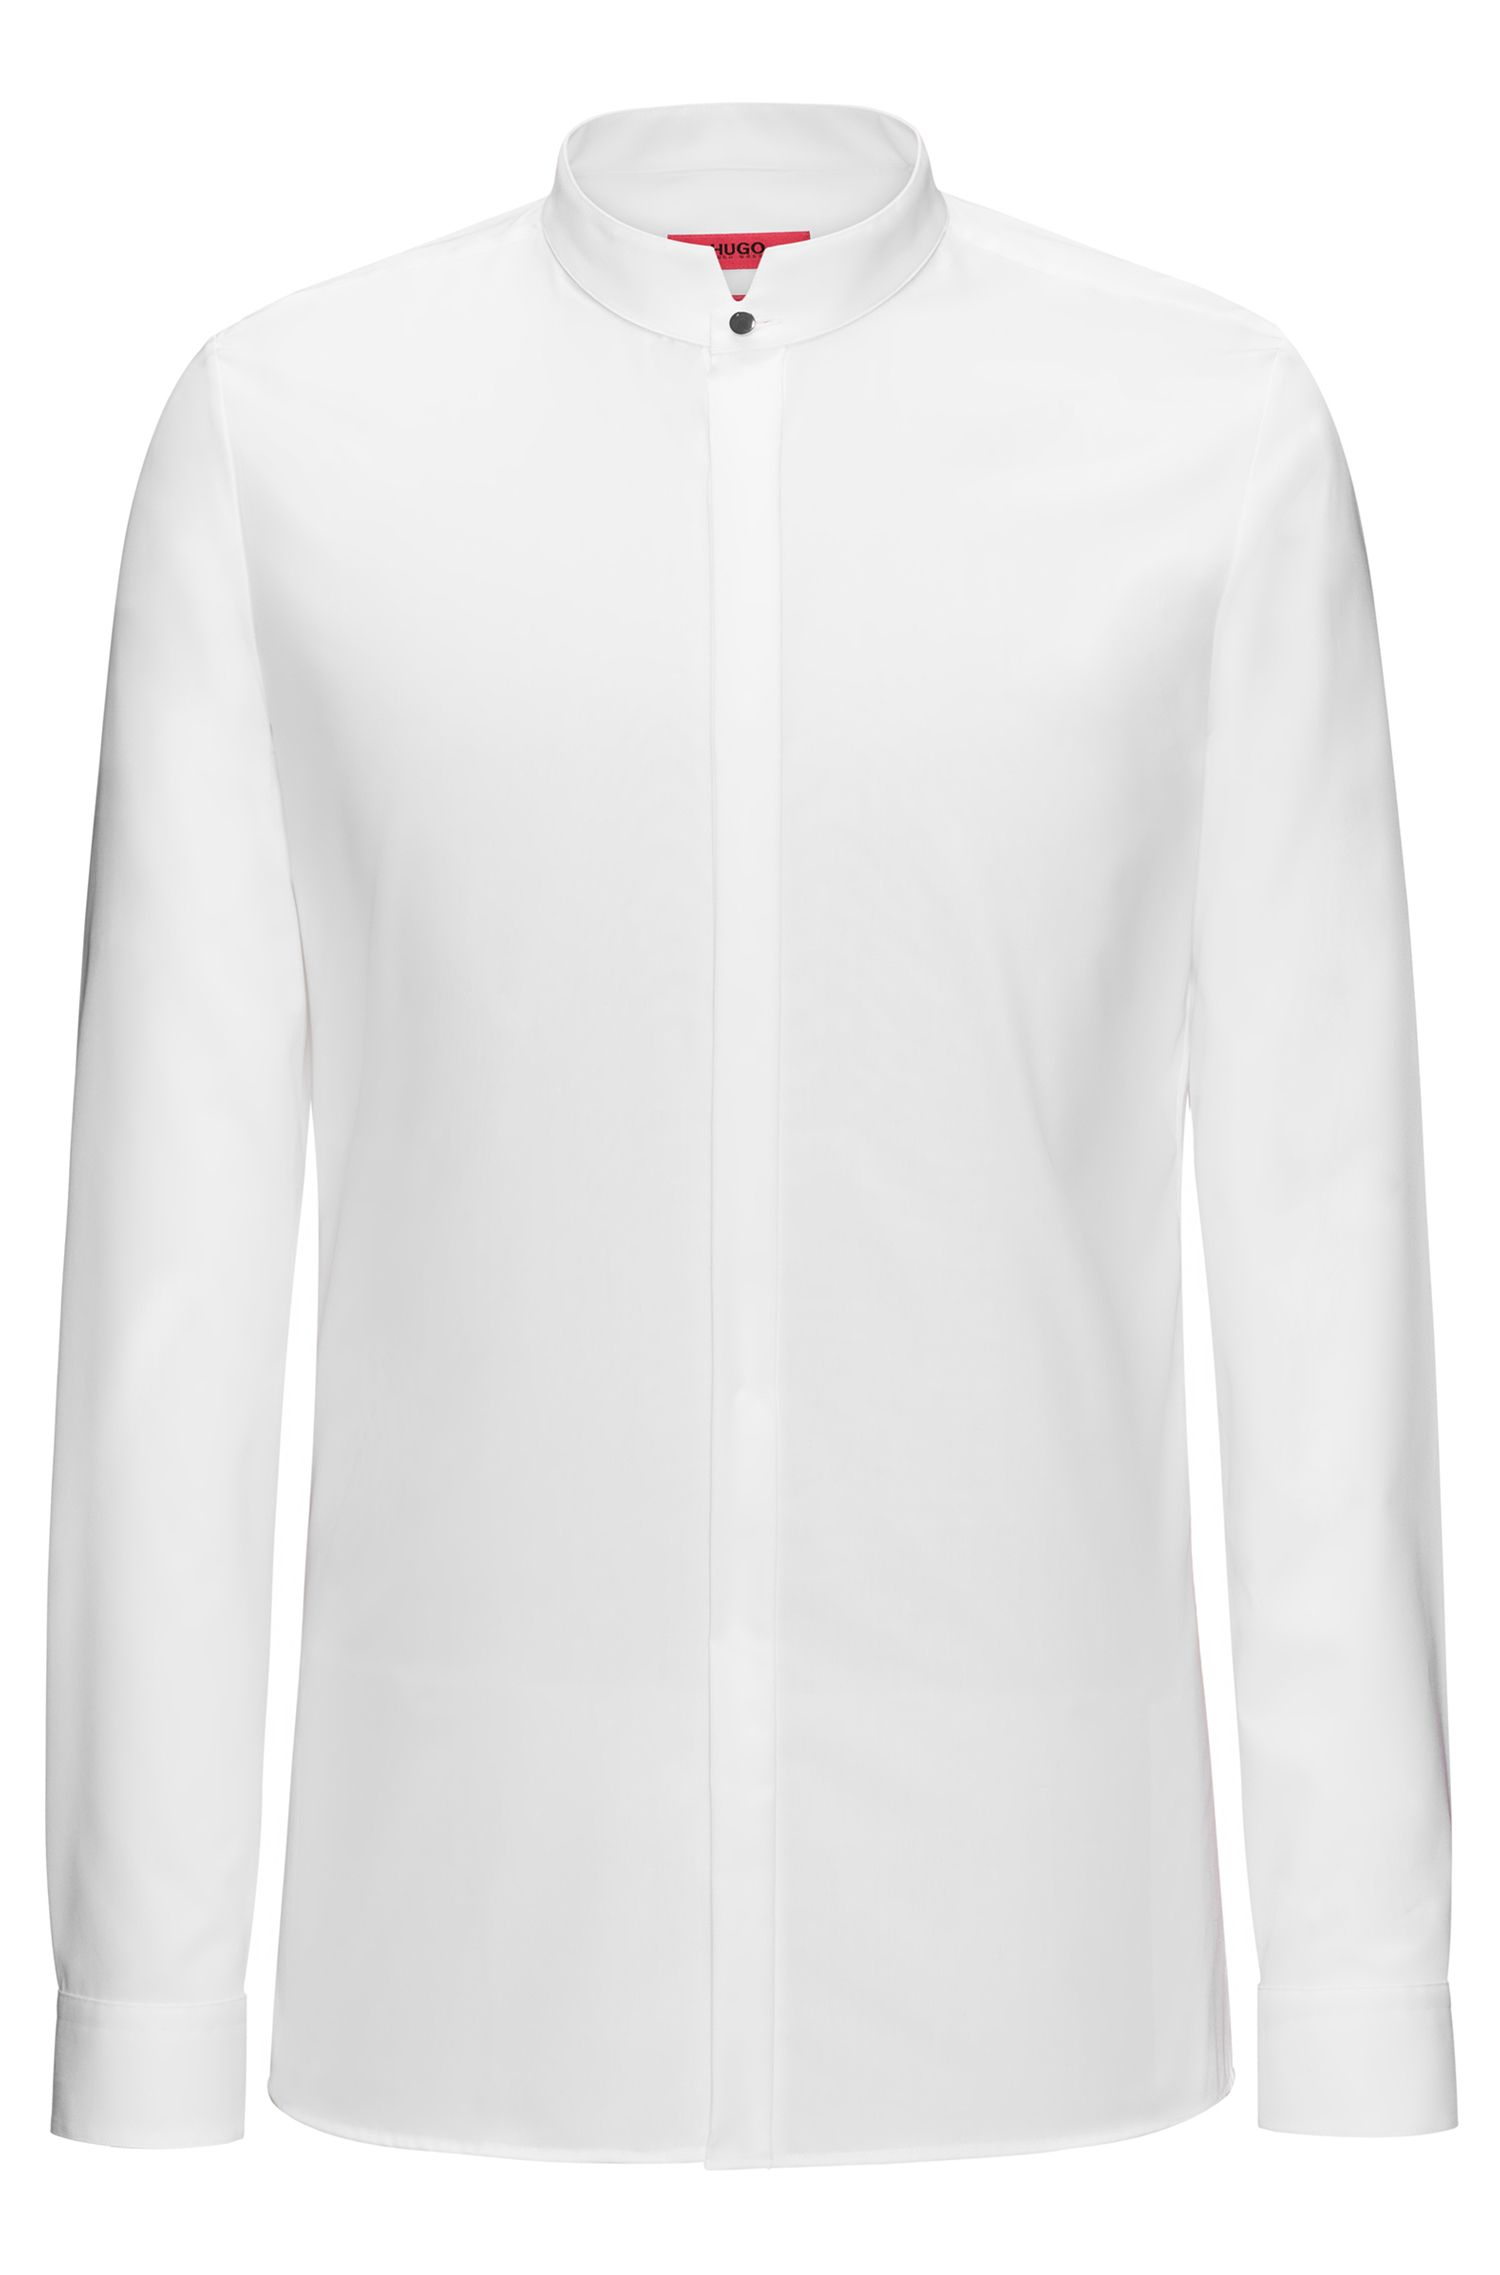 Extra-slim-fit cotton dress shirt with stand collar